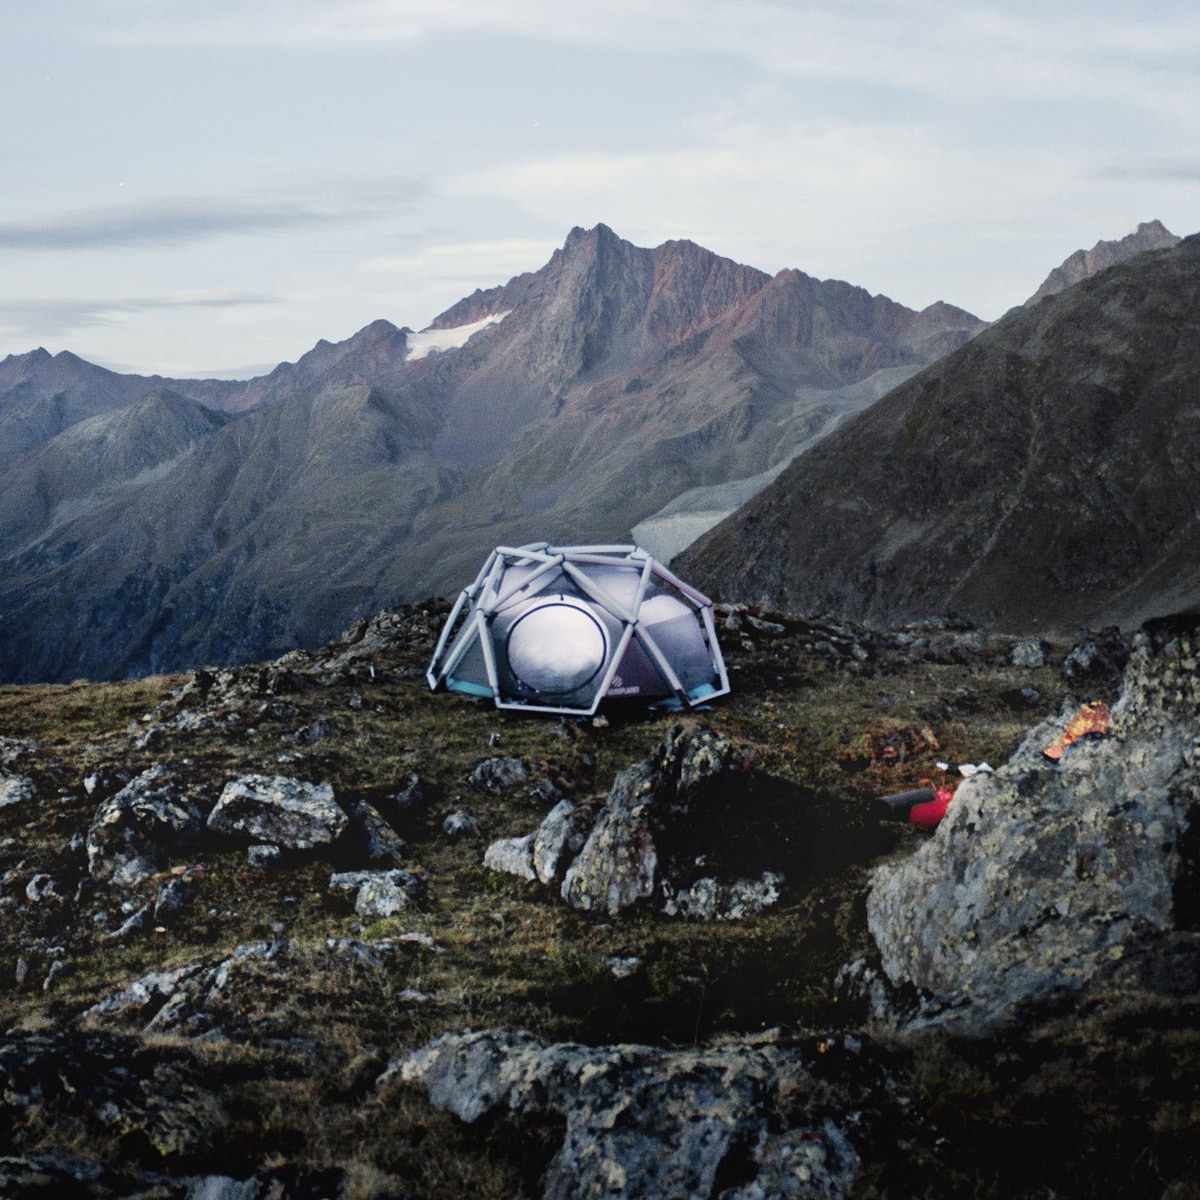 HeimPlanet Cave - Inflatable Geodesic Dome Tent & HeimPlanet Cave - Inflatable Geodesic Dome Tent - The Green Head